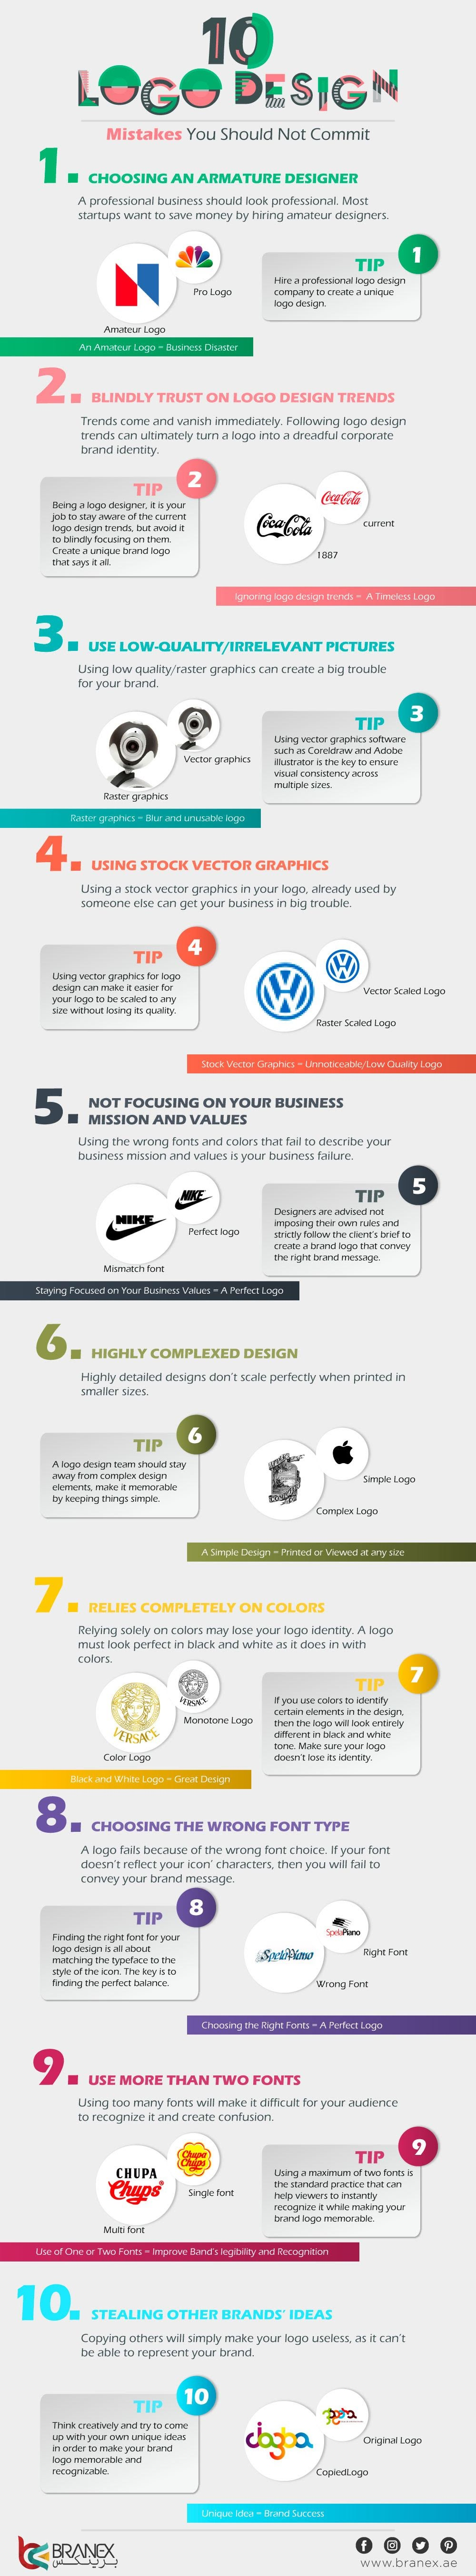 10 Logo Design Mistakes You Should Not Commit #infographic